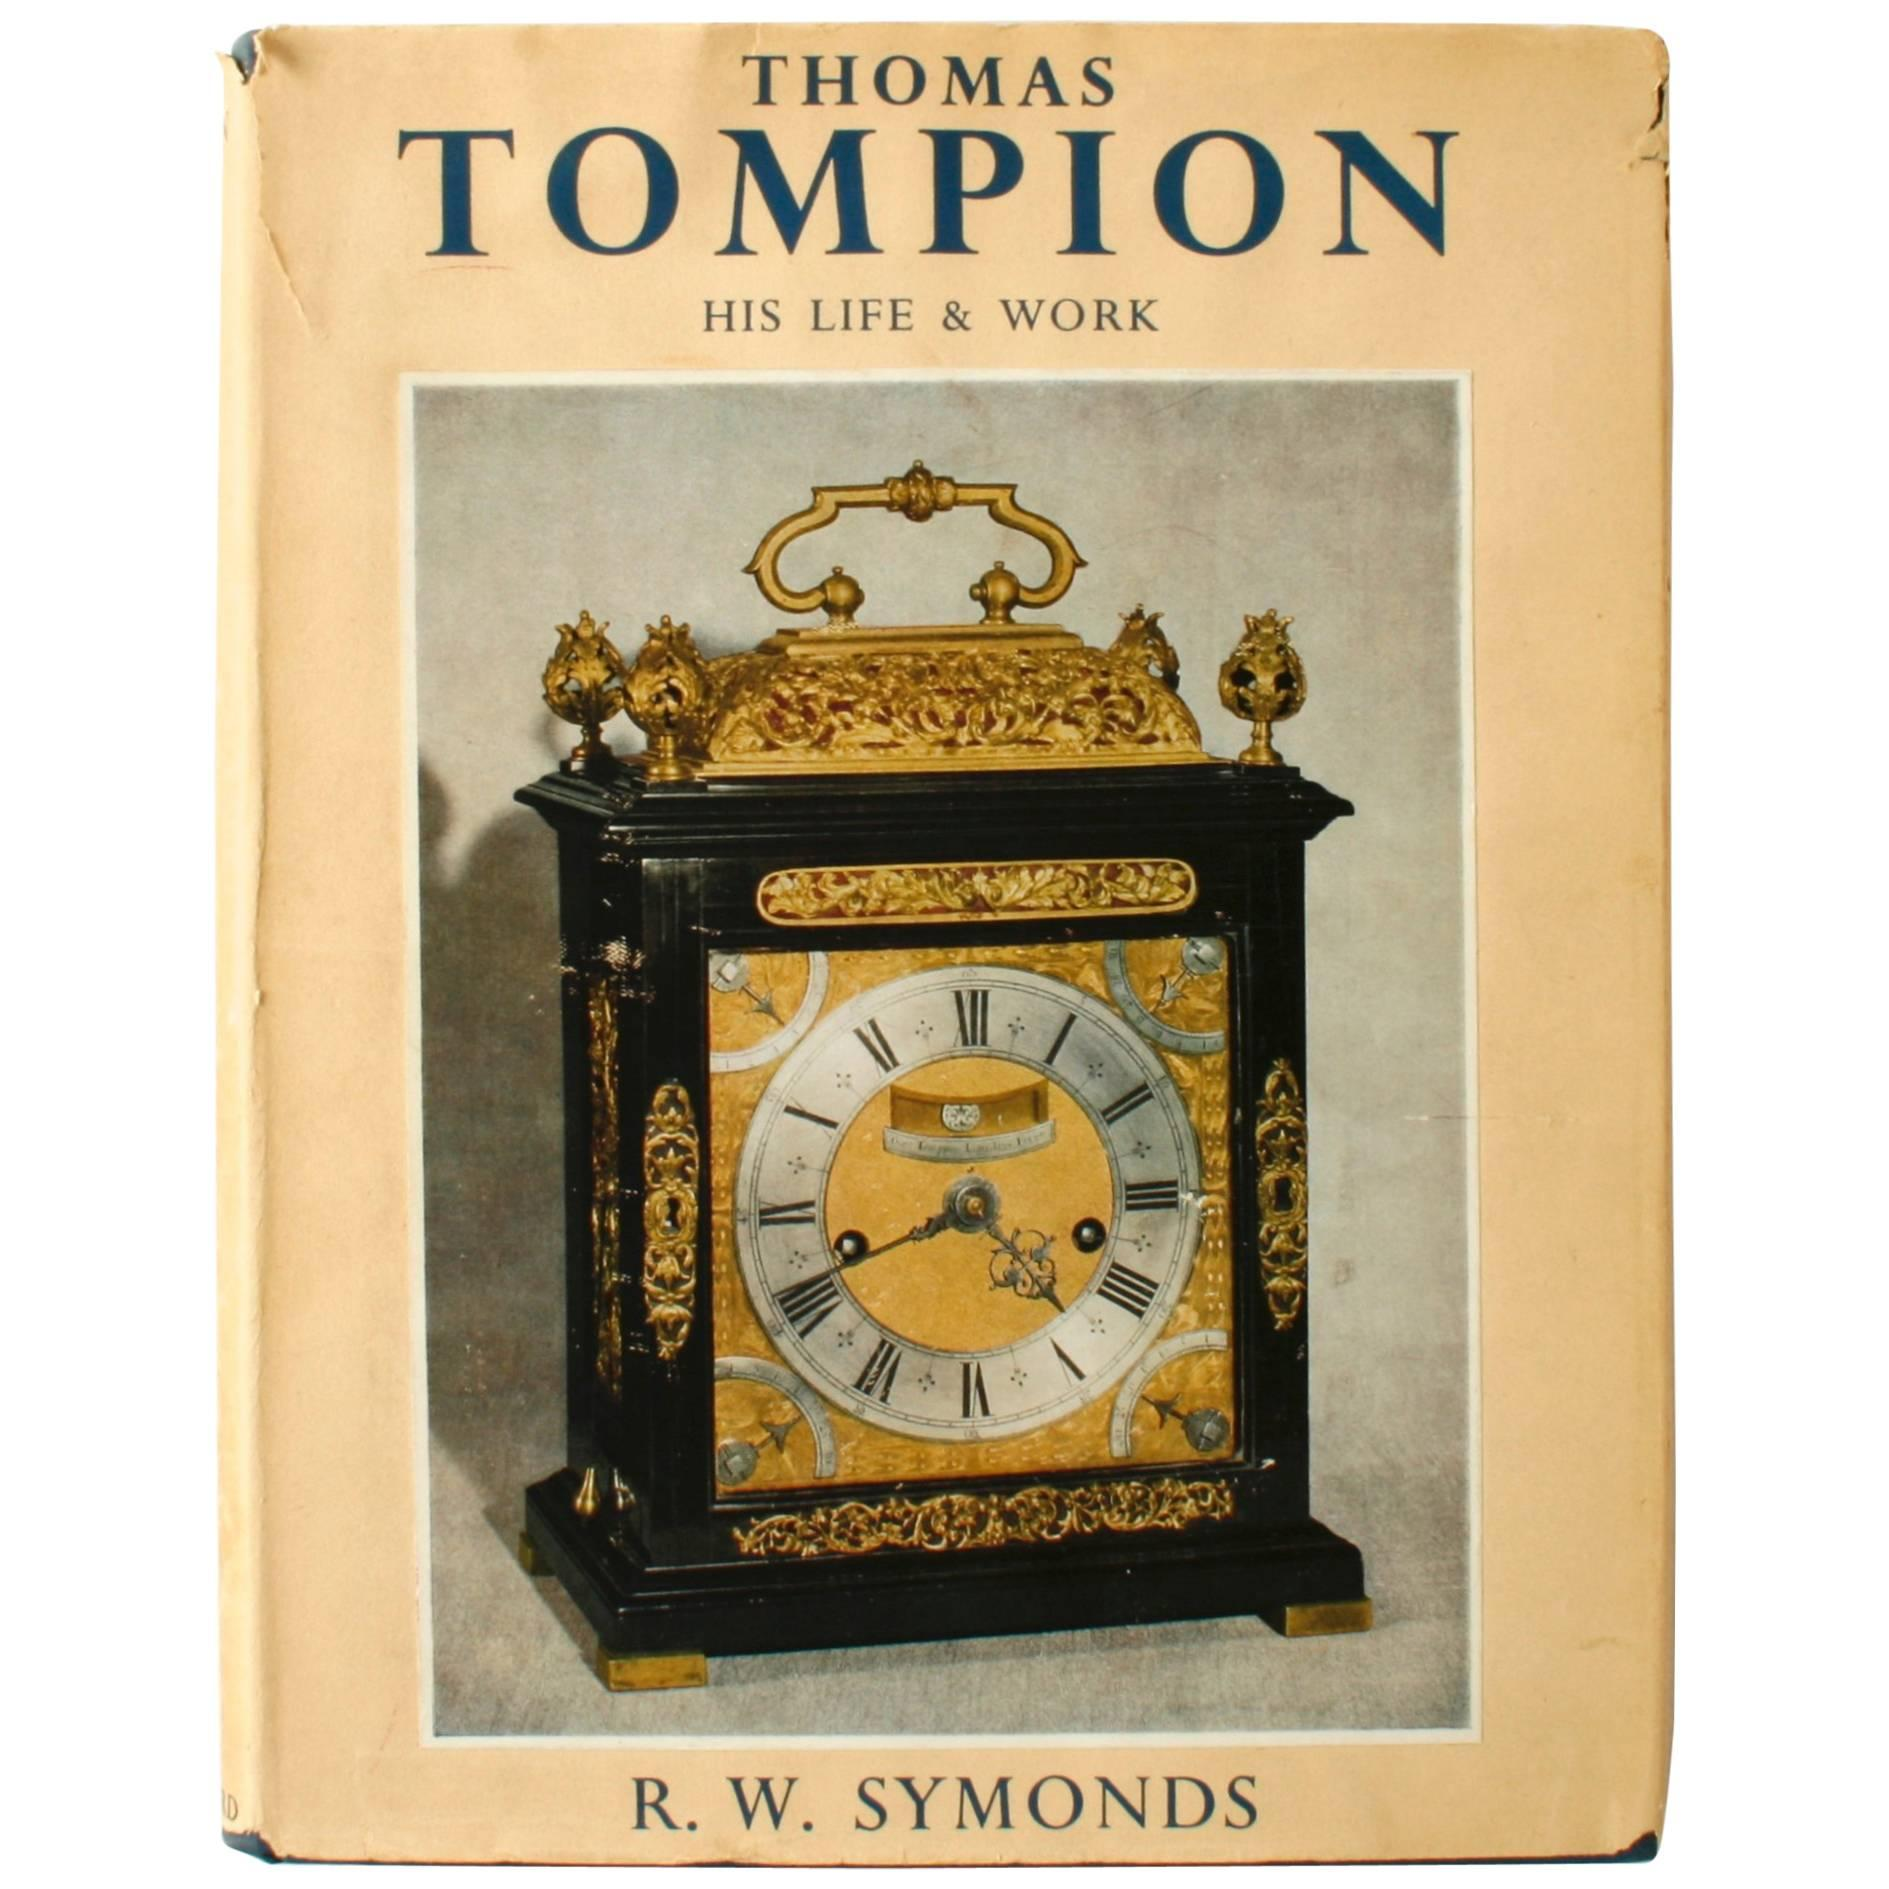 Thomas Tompion His Life & Work by R.W. Symonds, First Edition